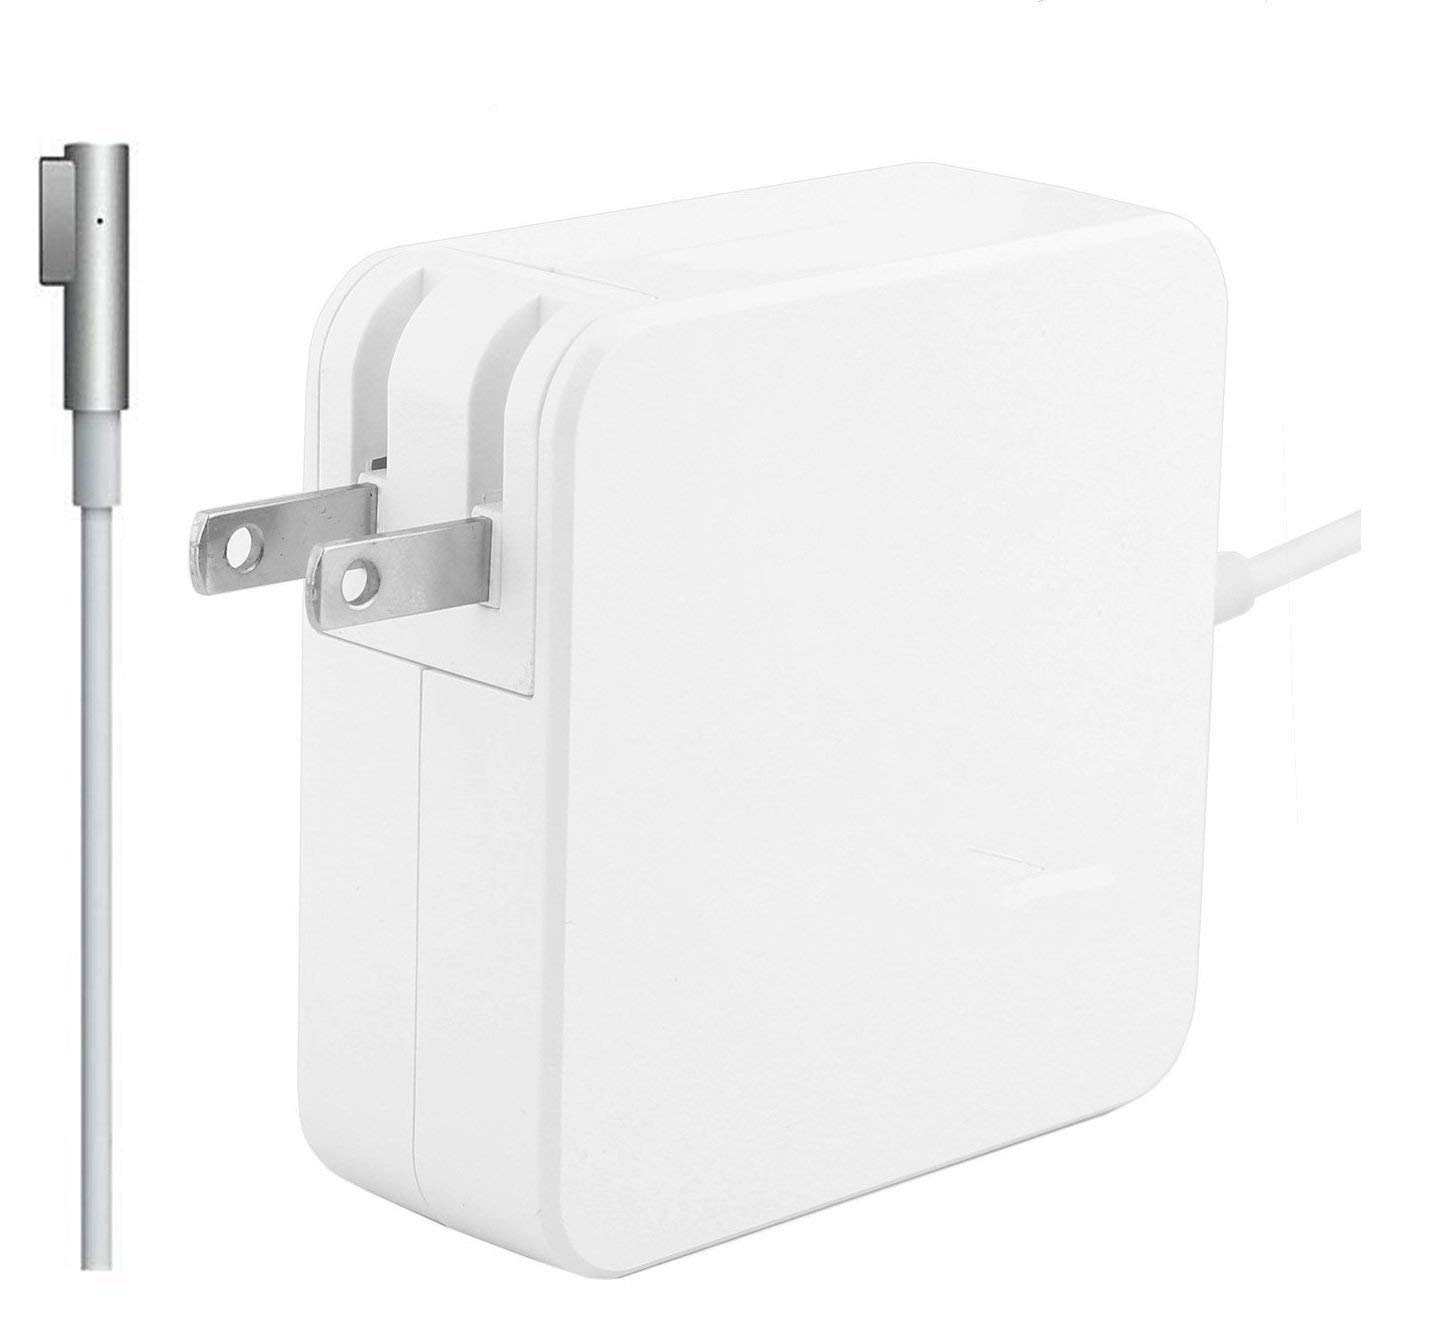 Mac Book Pro Charger, Replacement 60W L-Tip Magsafe 1 Power Adapter Charger for Mac Book and 13-inch Mac Book Pro (Before Mid 2012 Models)